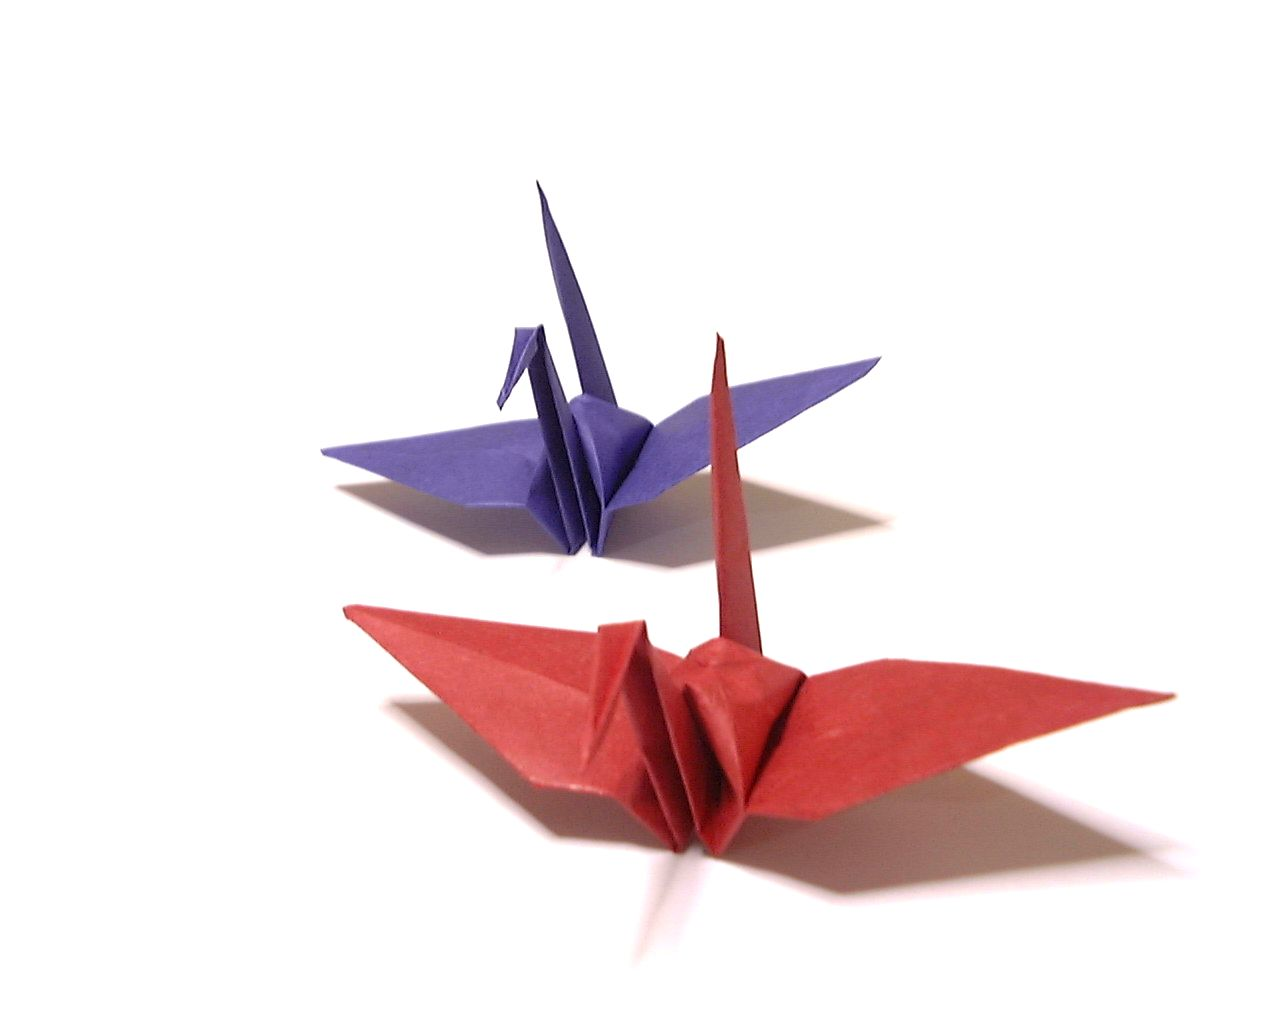 Japan Living: All about Japanese Origami - photo#1